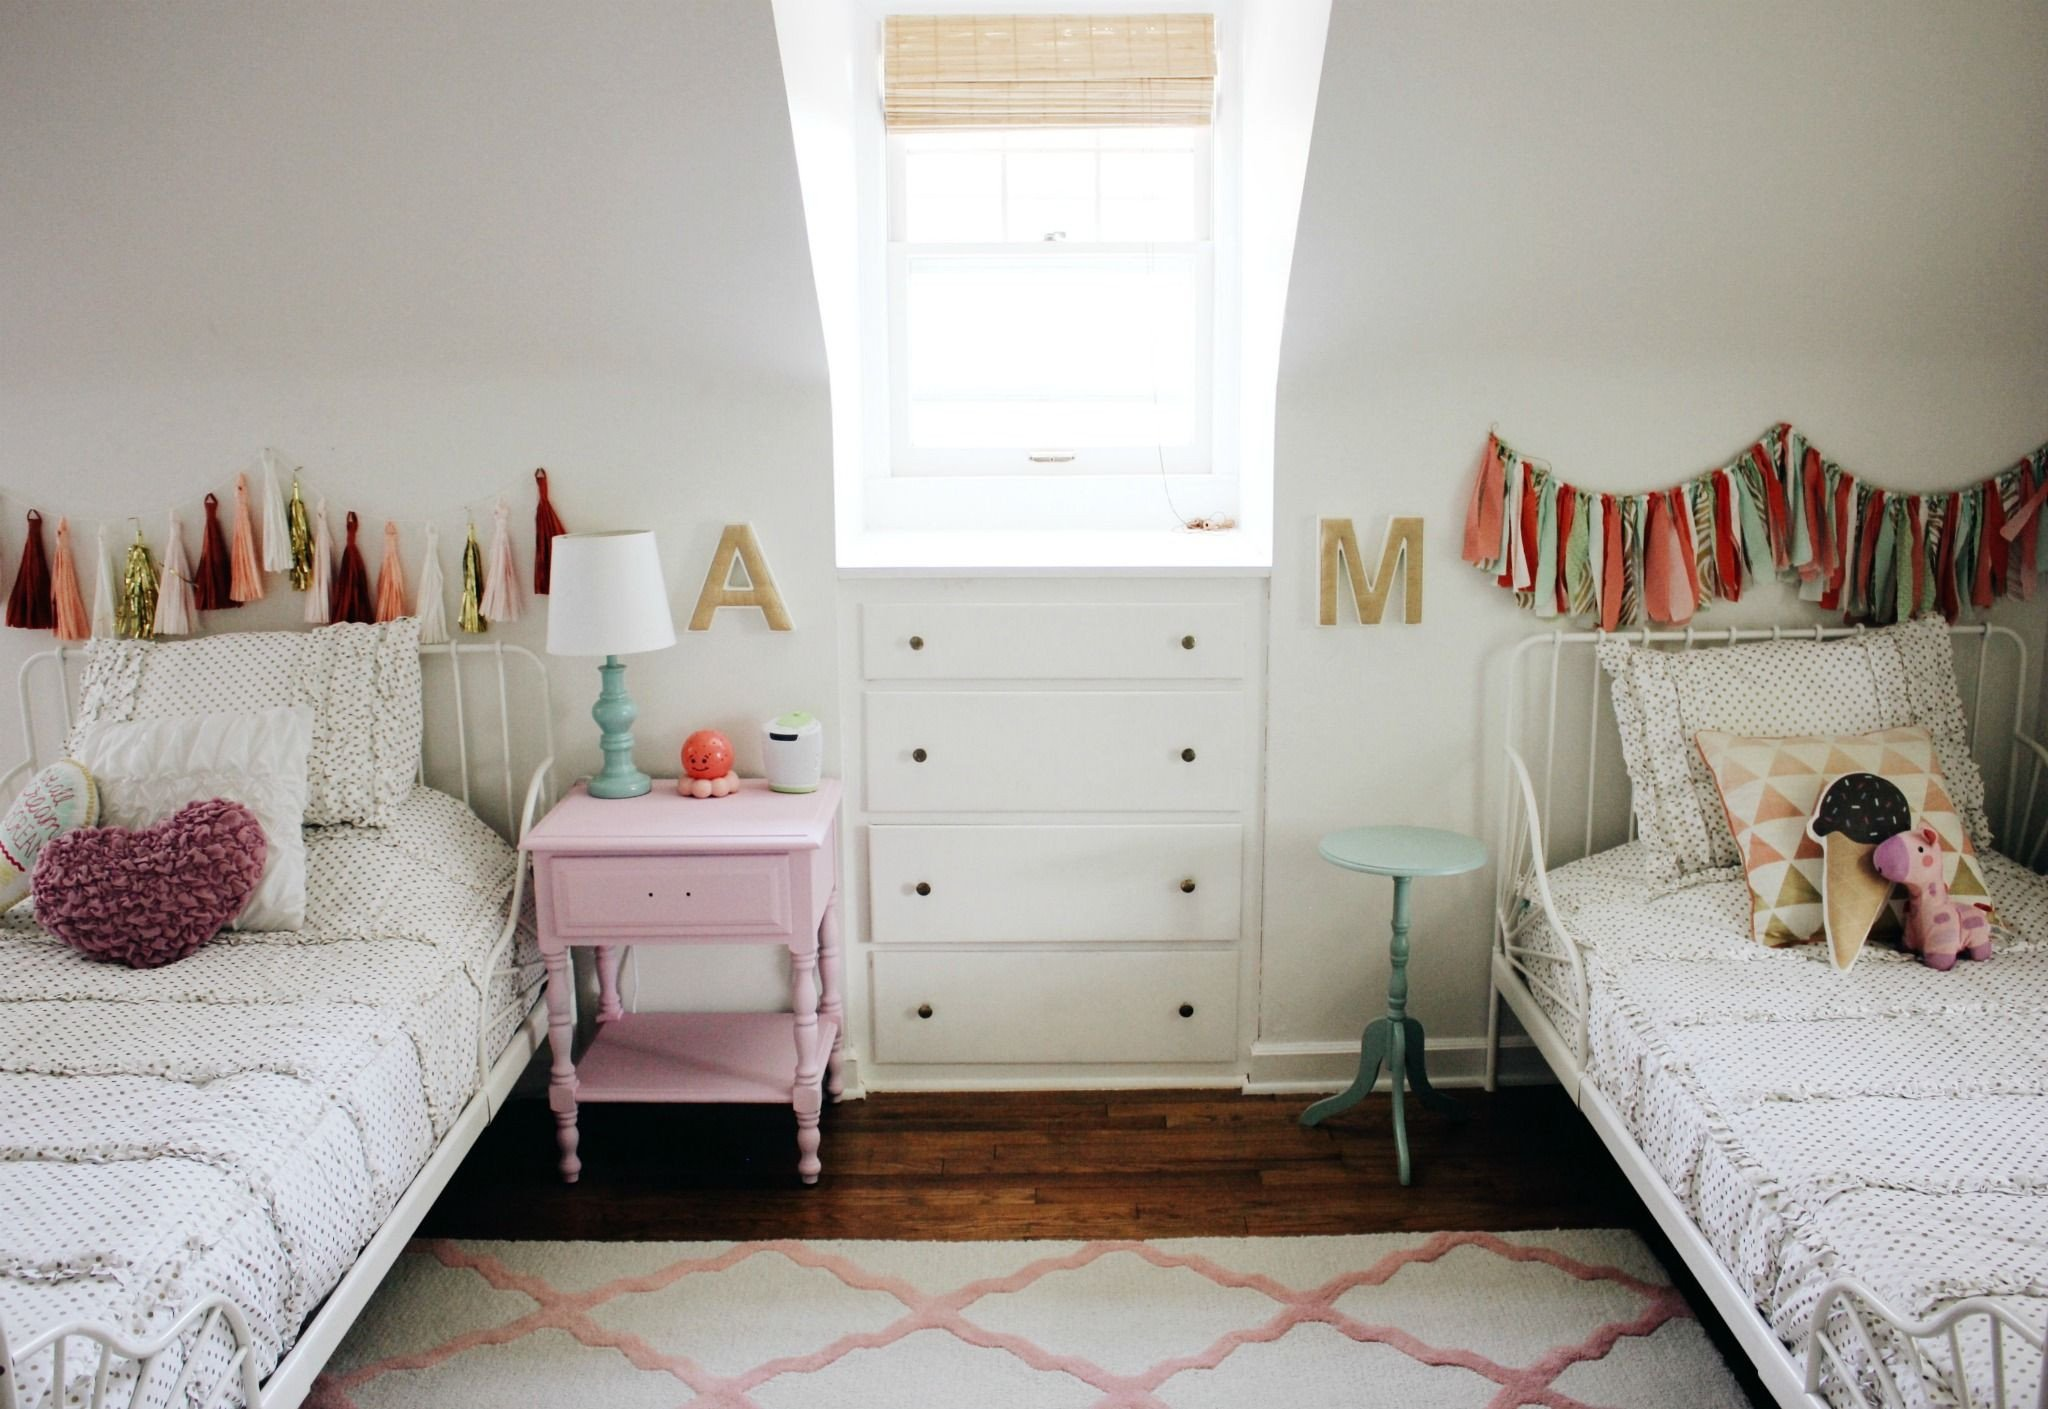 Bedroom Set for Girls Lovely In the D Girls Room with A Life